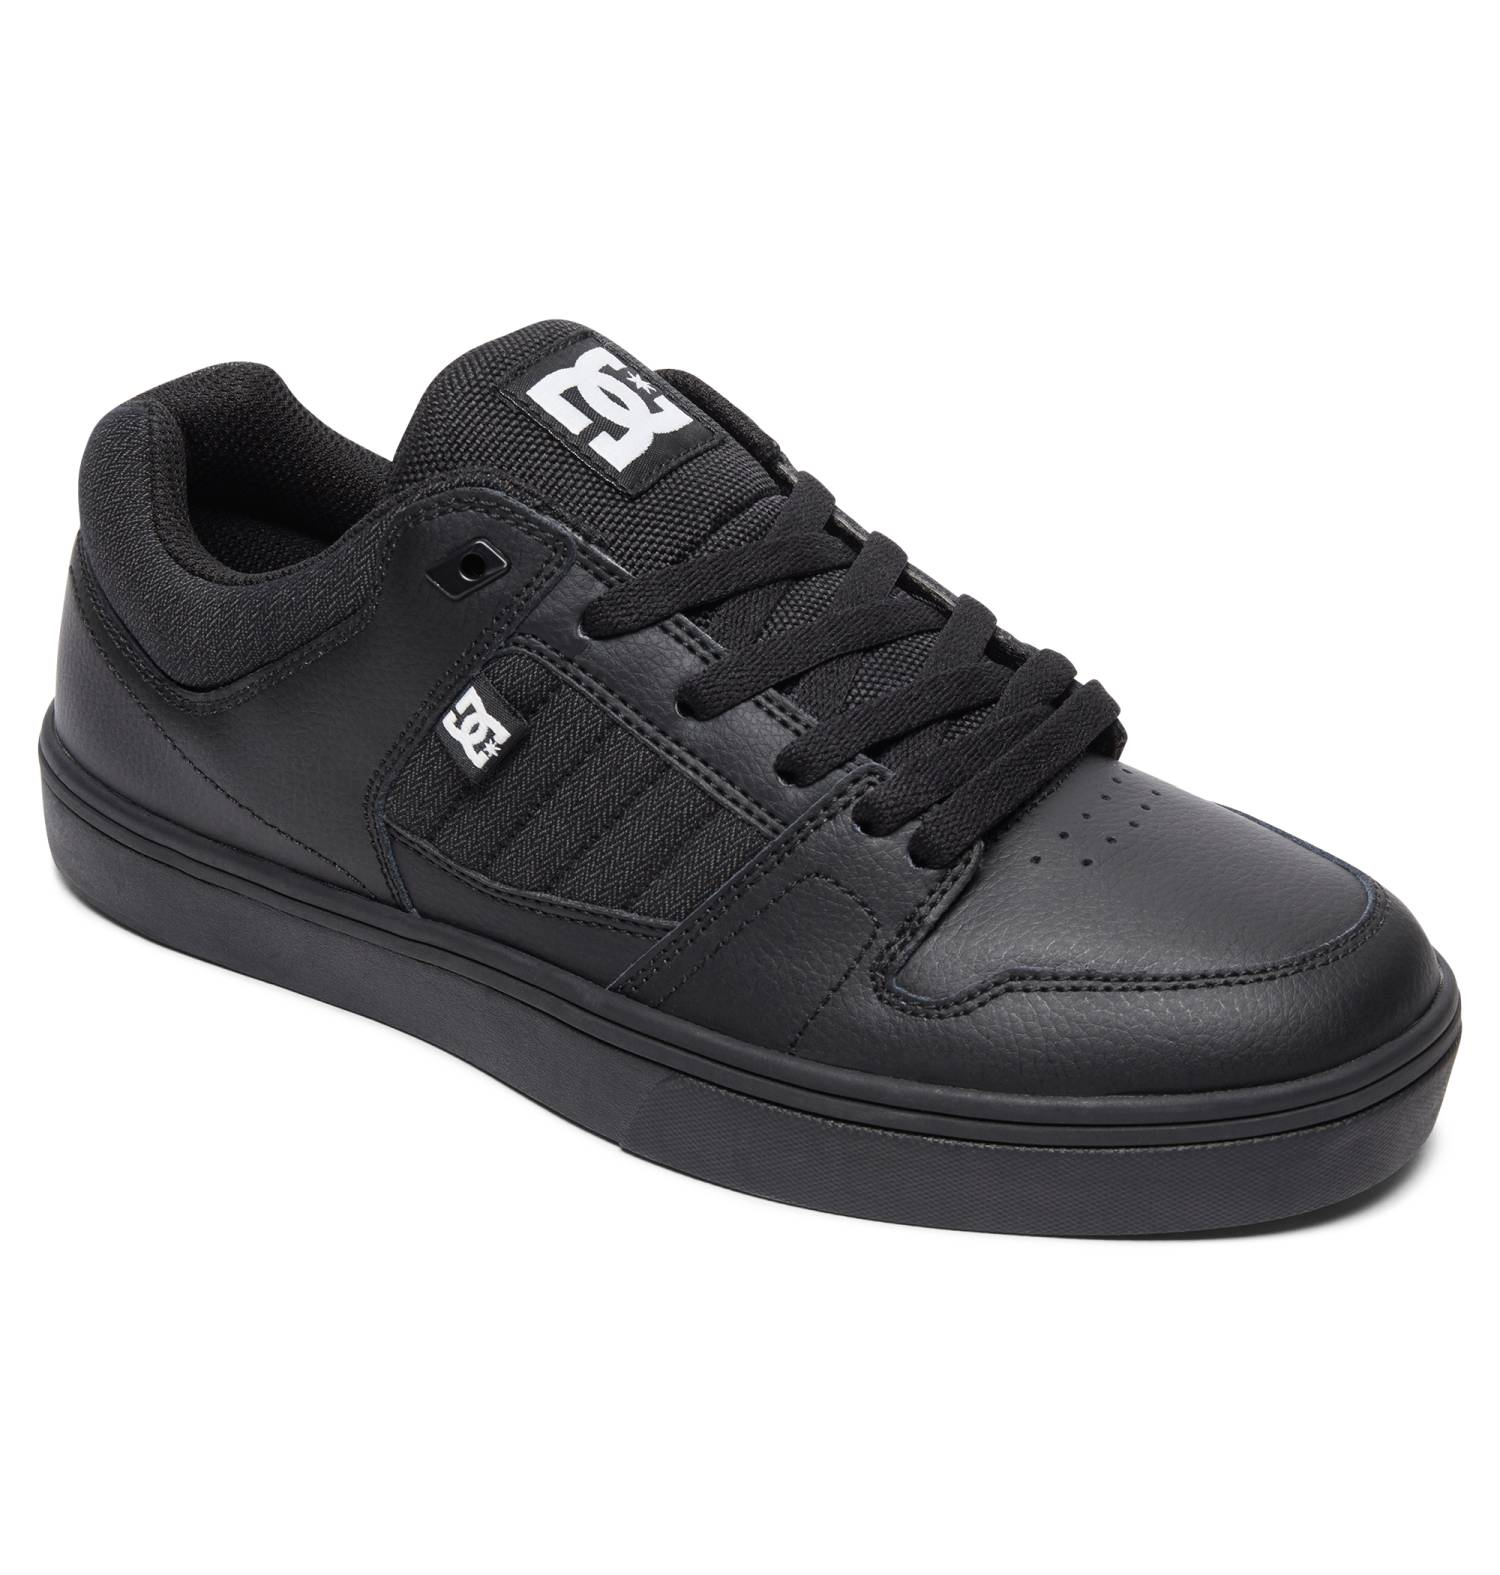 DC Shoes Course 2 SE schwarz Black Grey White Low Sneaker Skateschuhe Herren